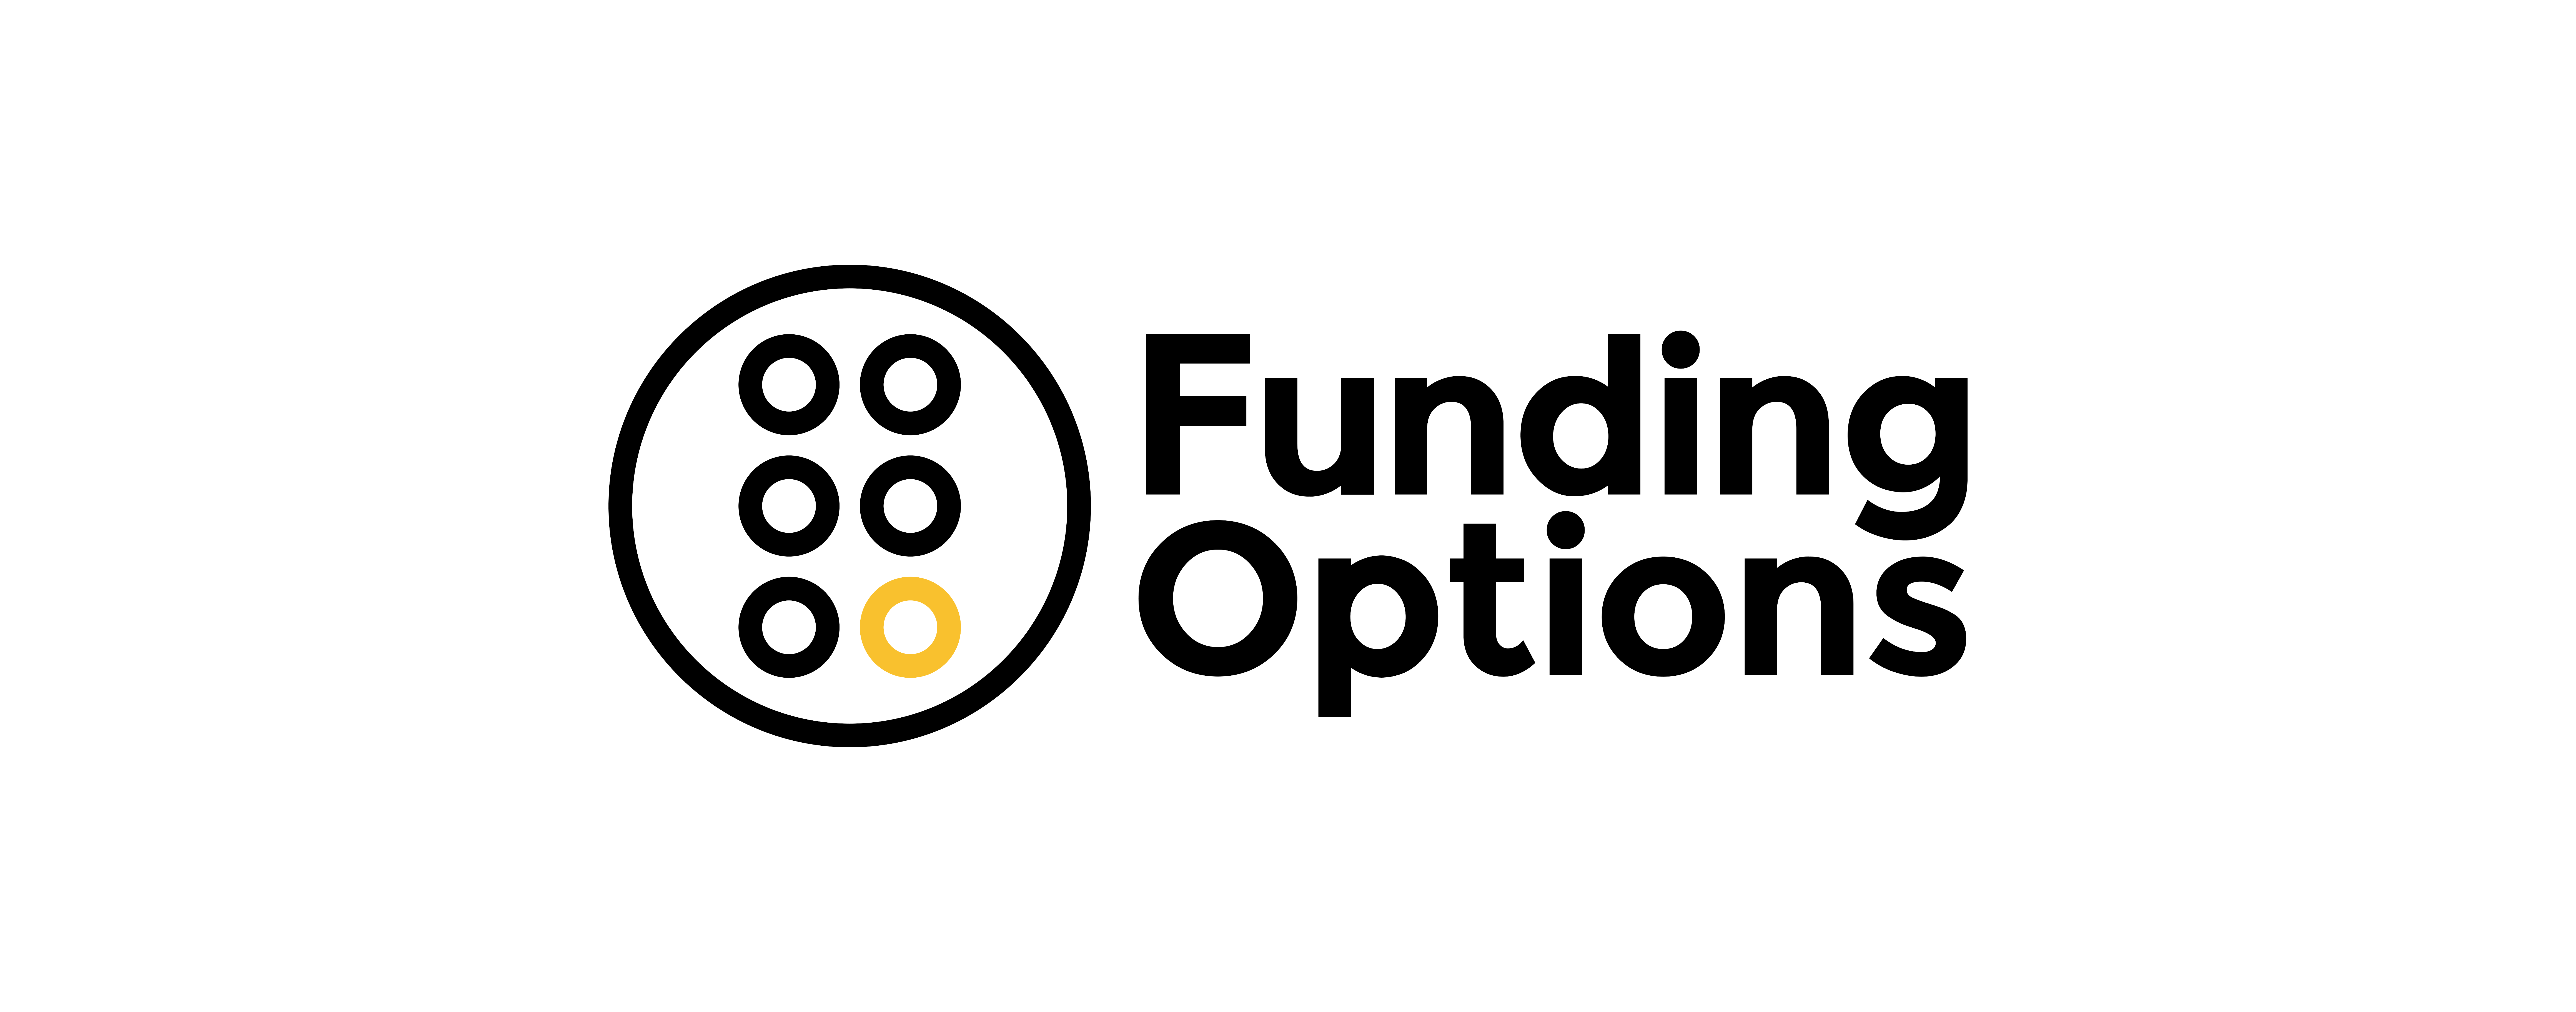 Funding Options Partners with the Institute of Financial Accountants to Support SMEs Financial Needs